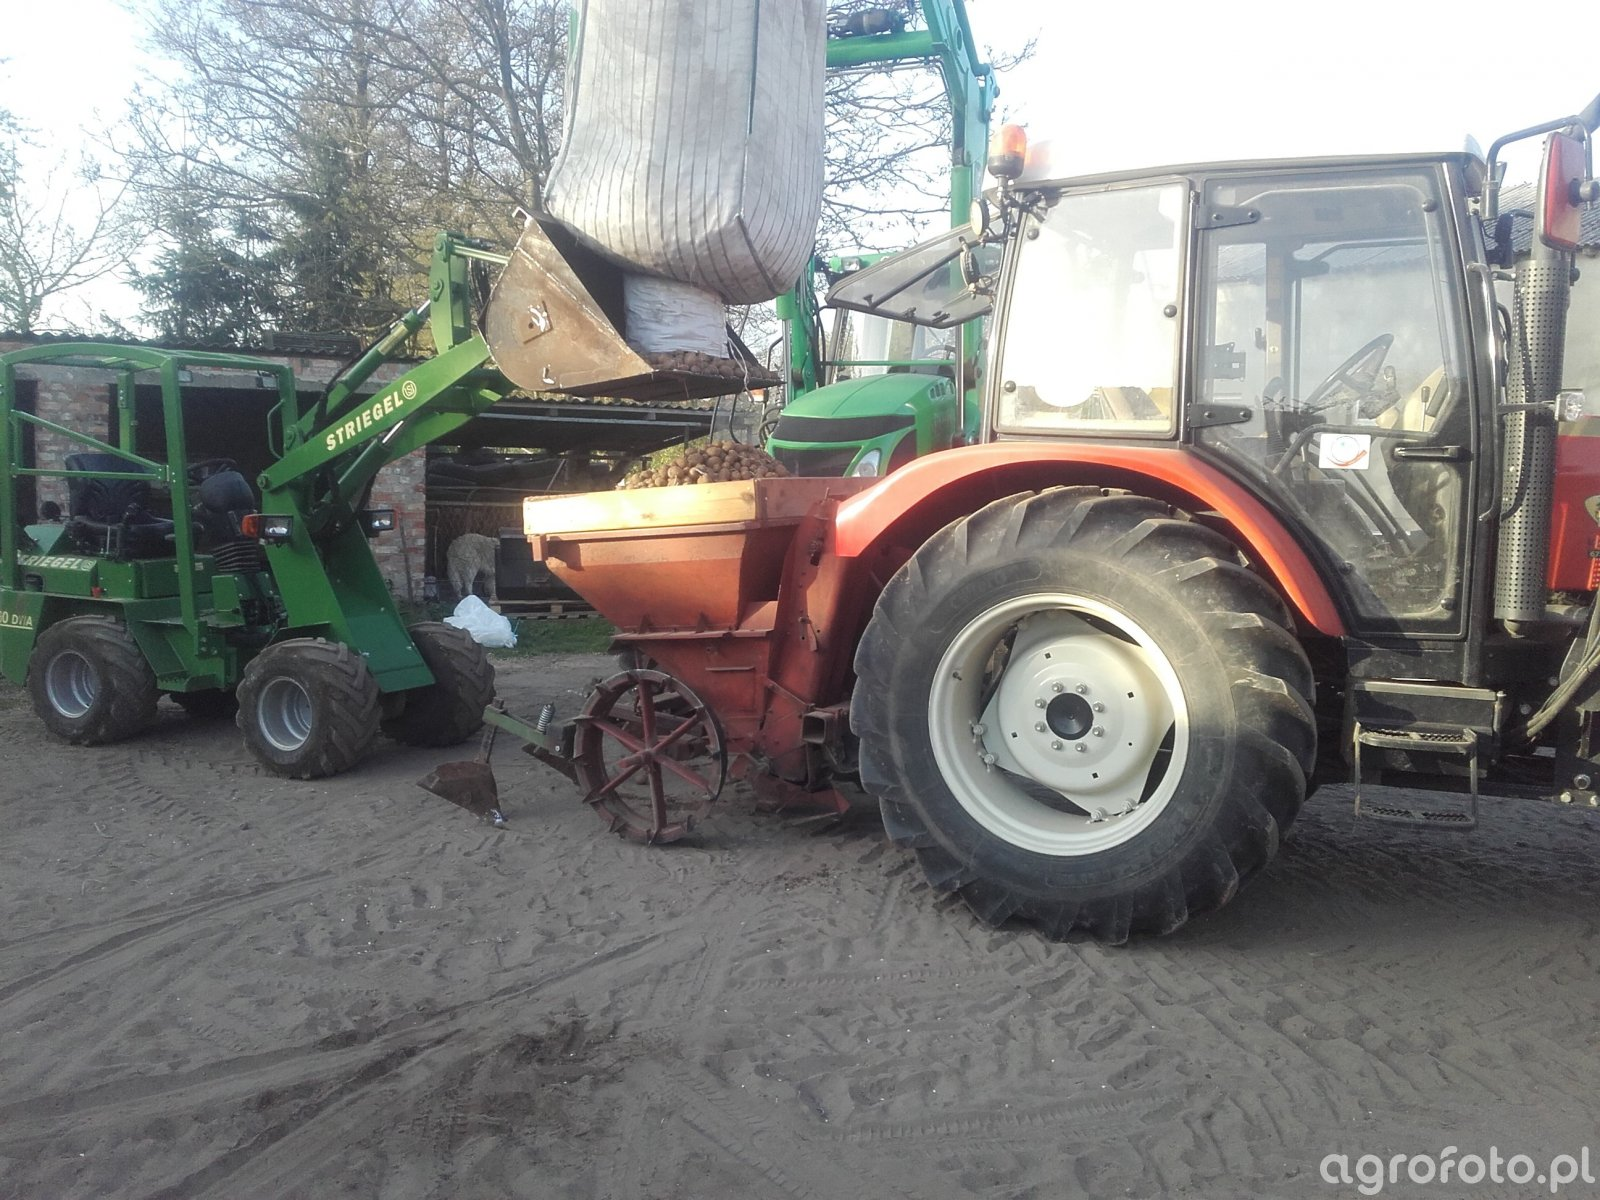 crystal orion 13 farmtrac striegel remprodex